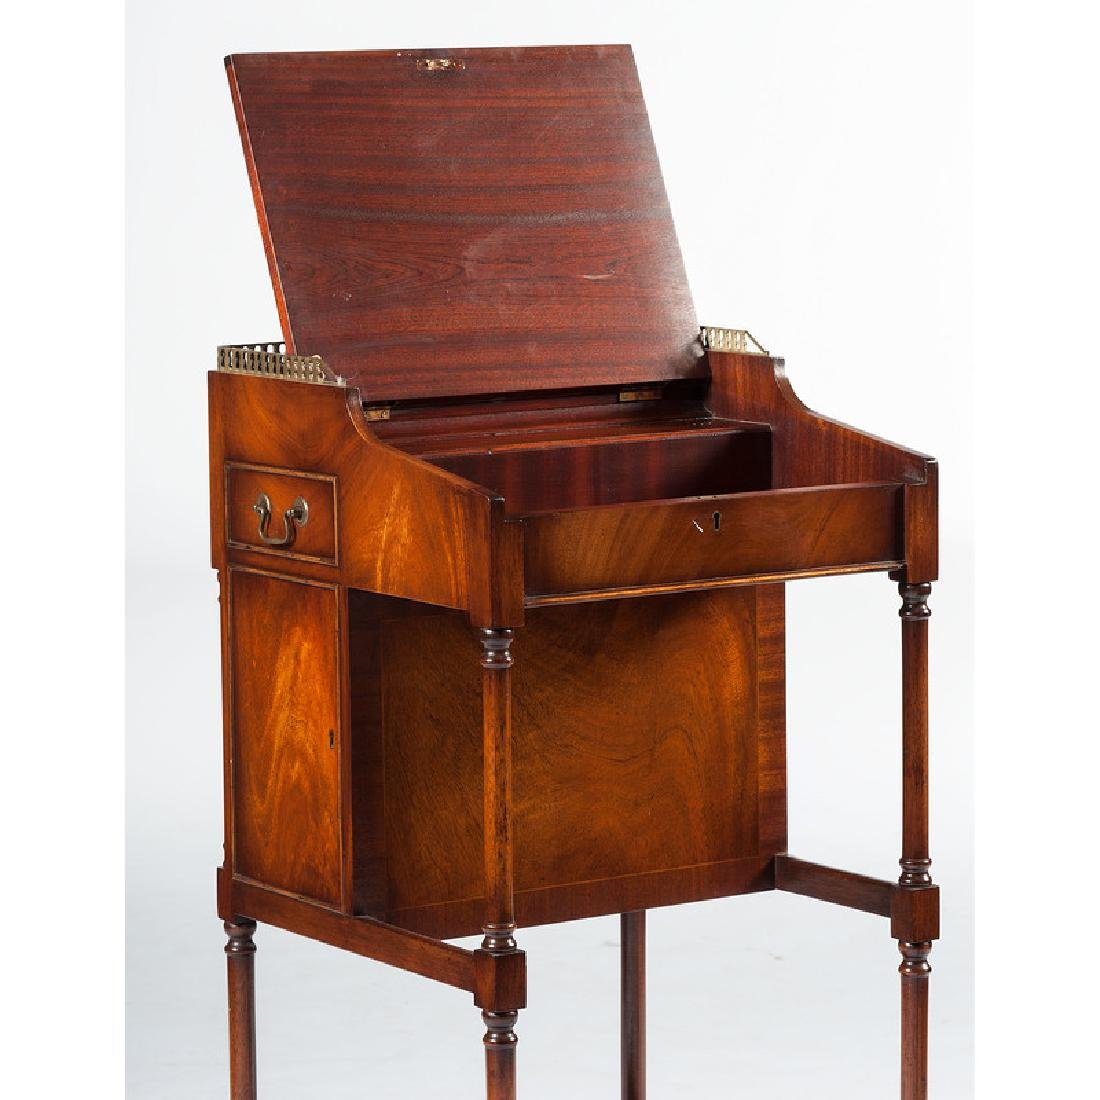 English Mahogany Desk with Stool - 5